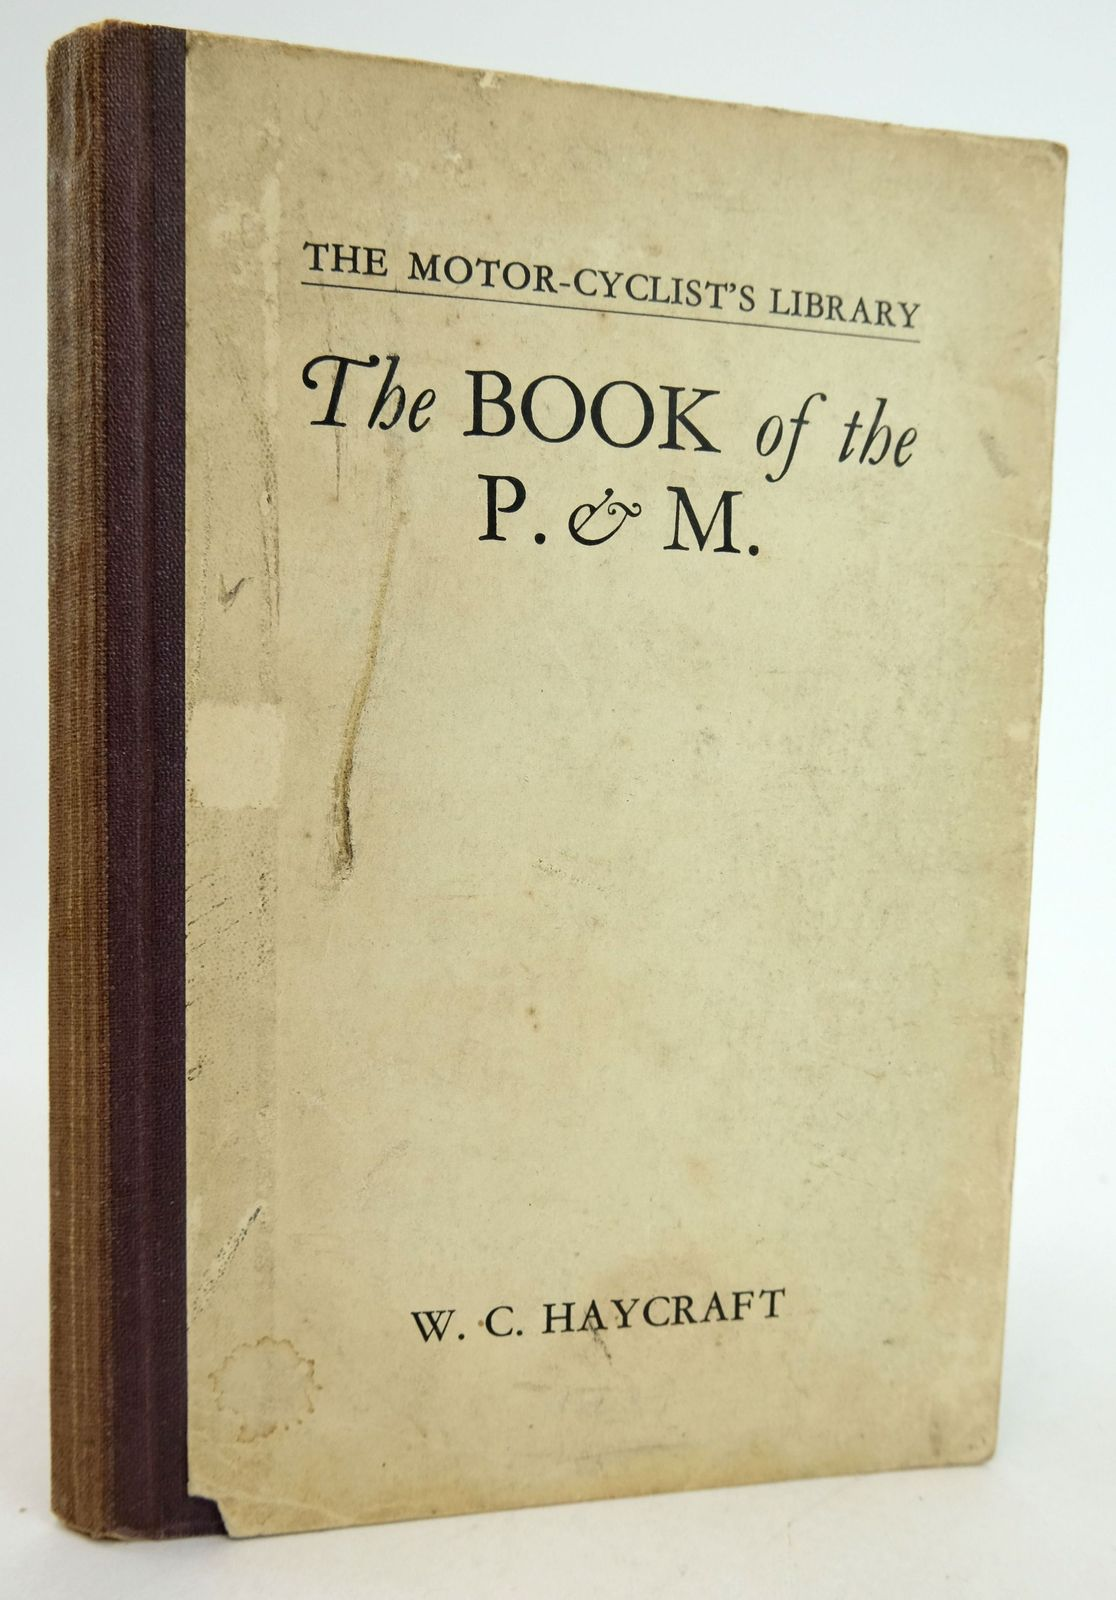 Photo of THE BOOK OF THE P. & M. (THE MOTOR-CYCLIST'S LIBRARY)- Stock Number: 1819455